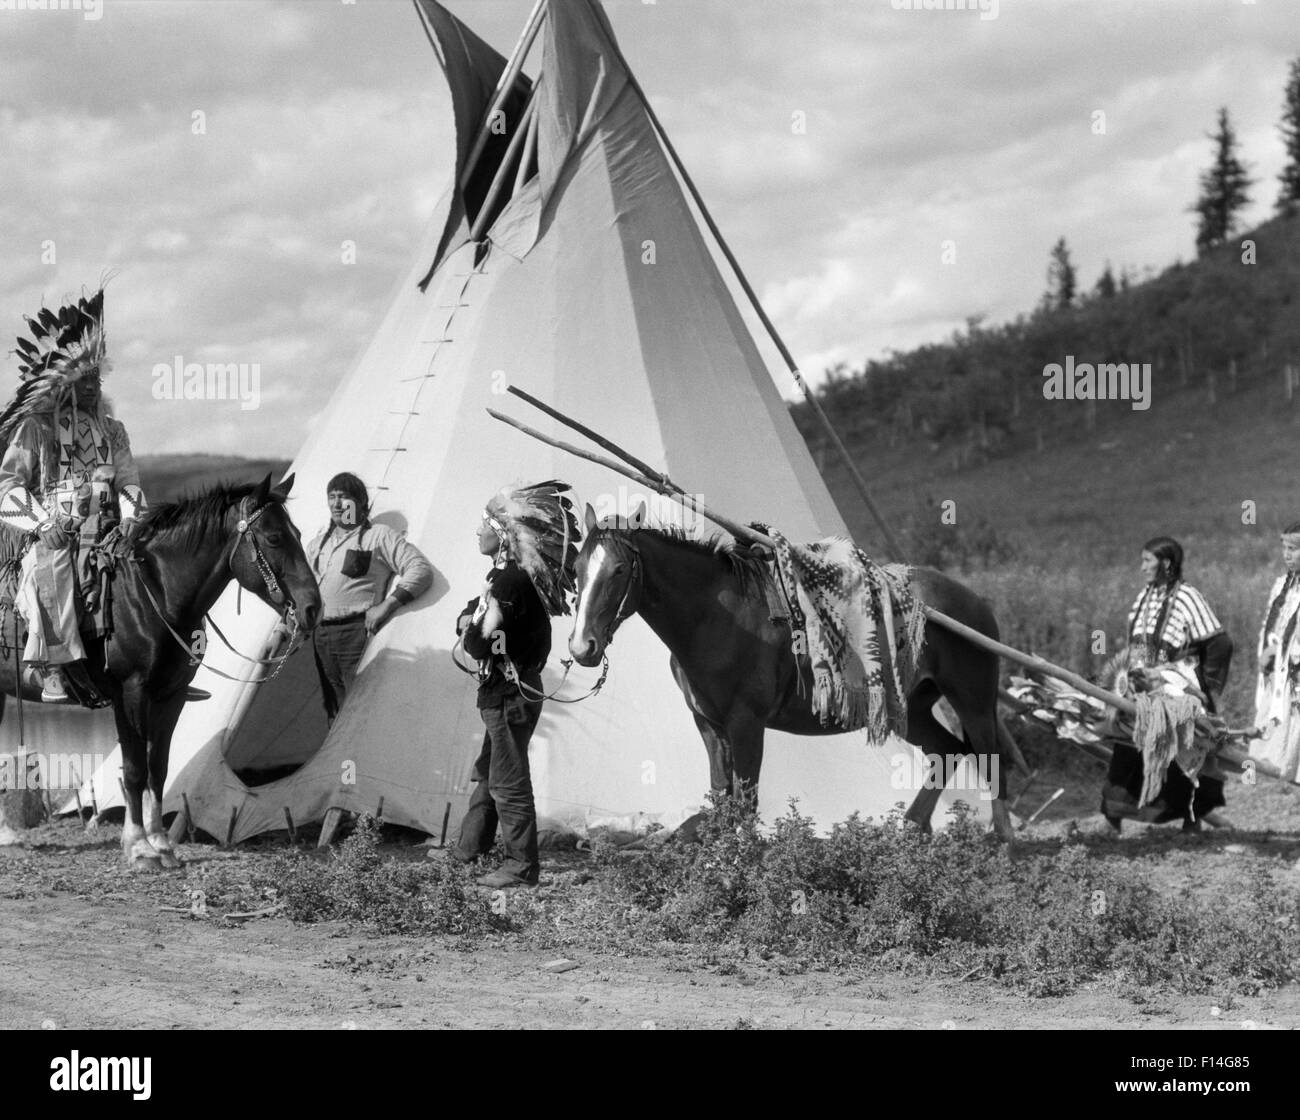 Native American Group The Sioux 53